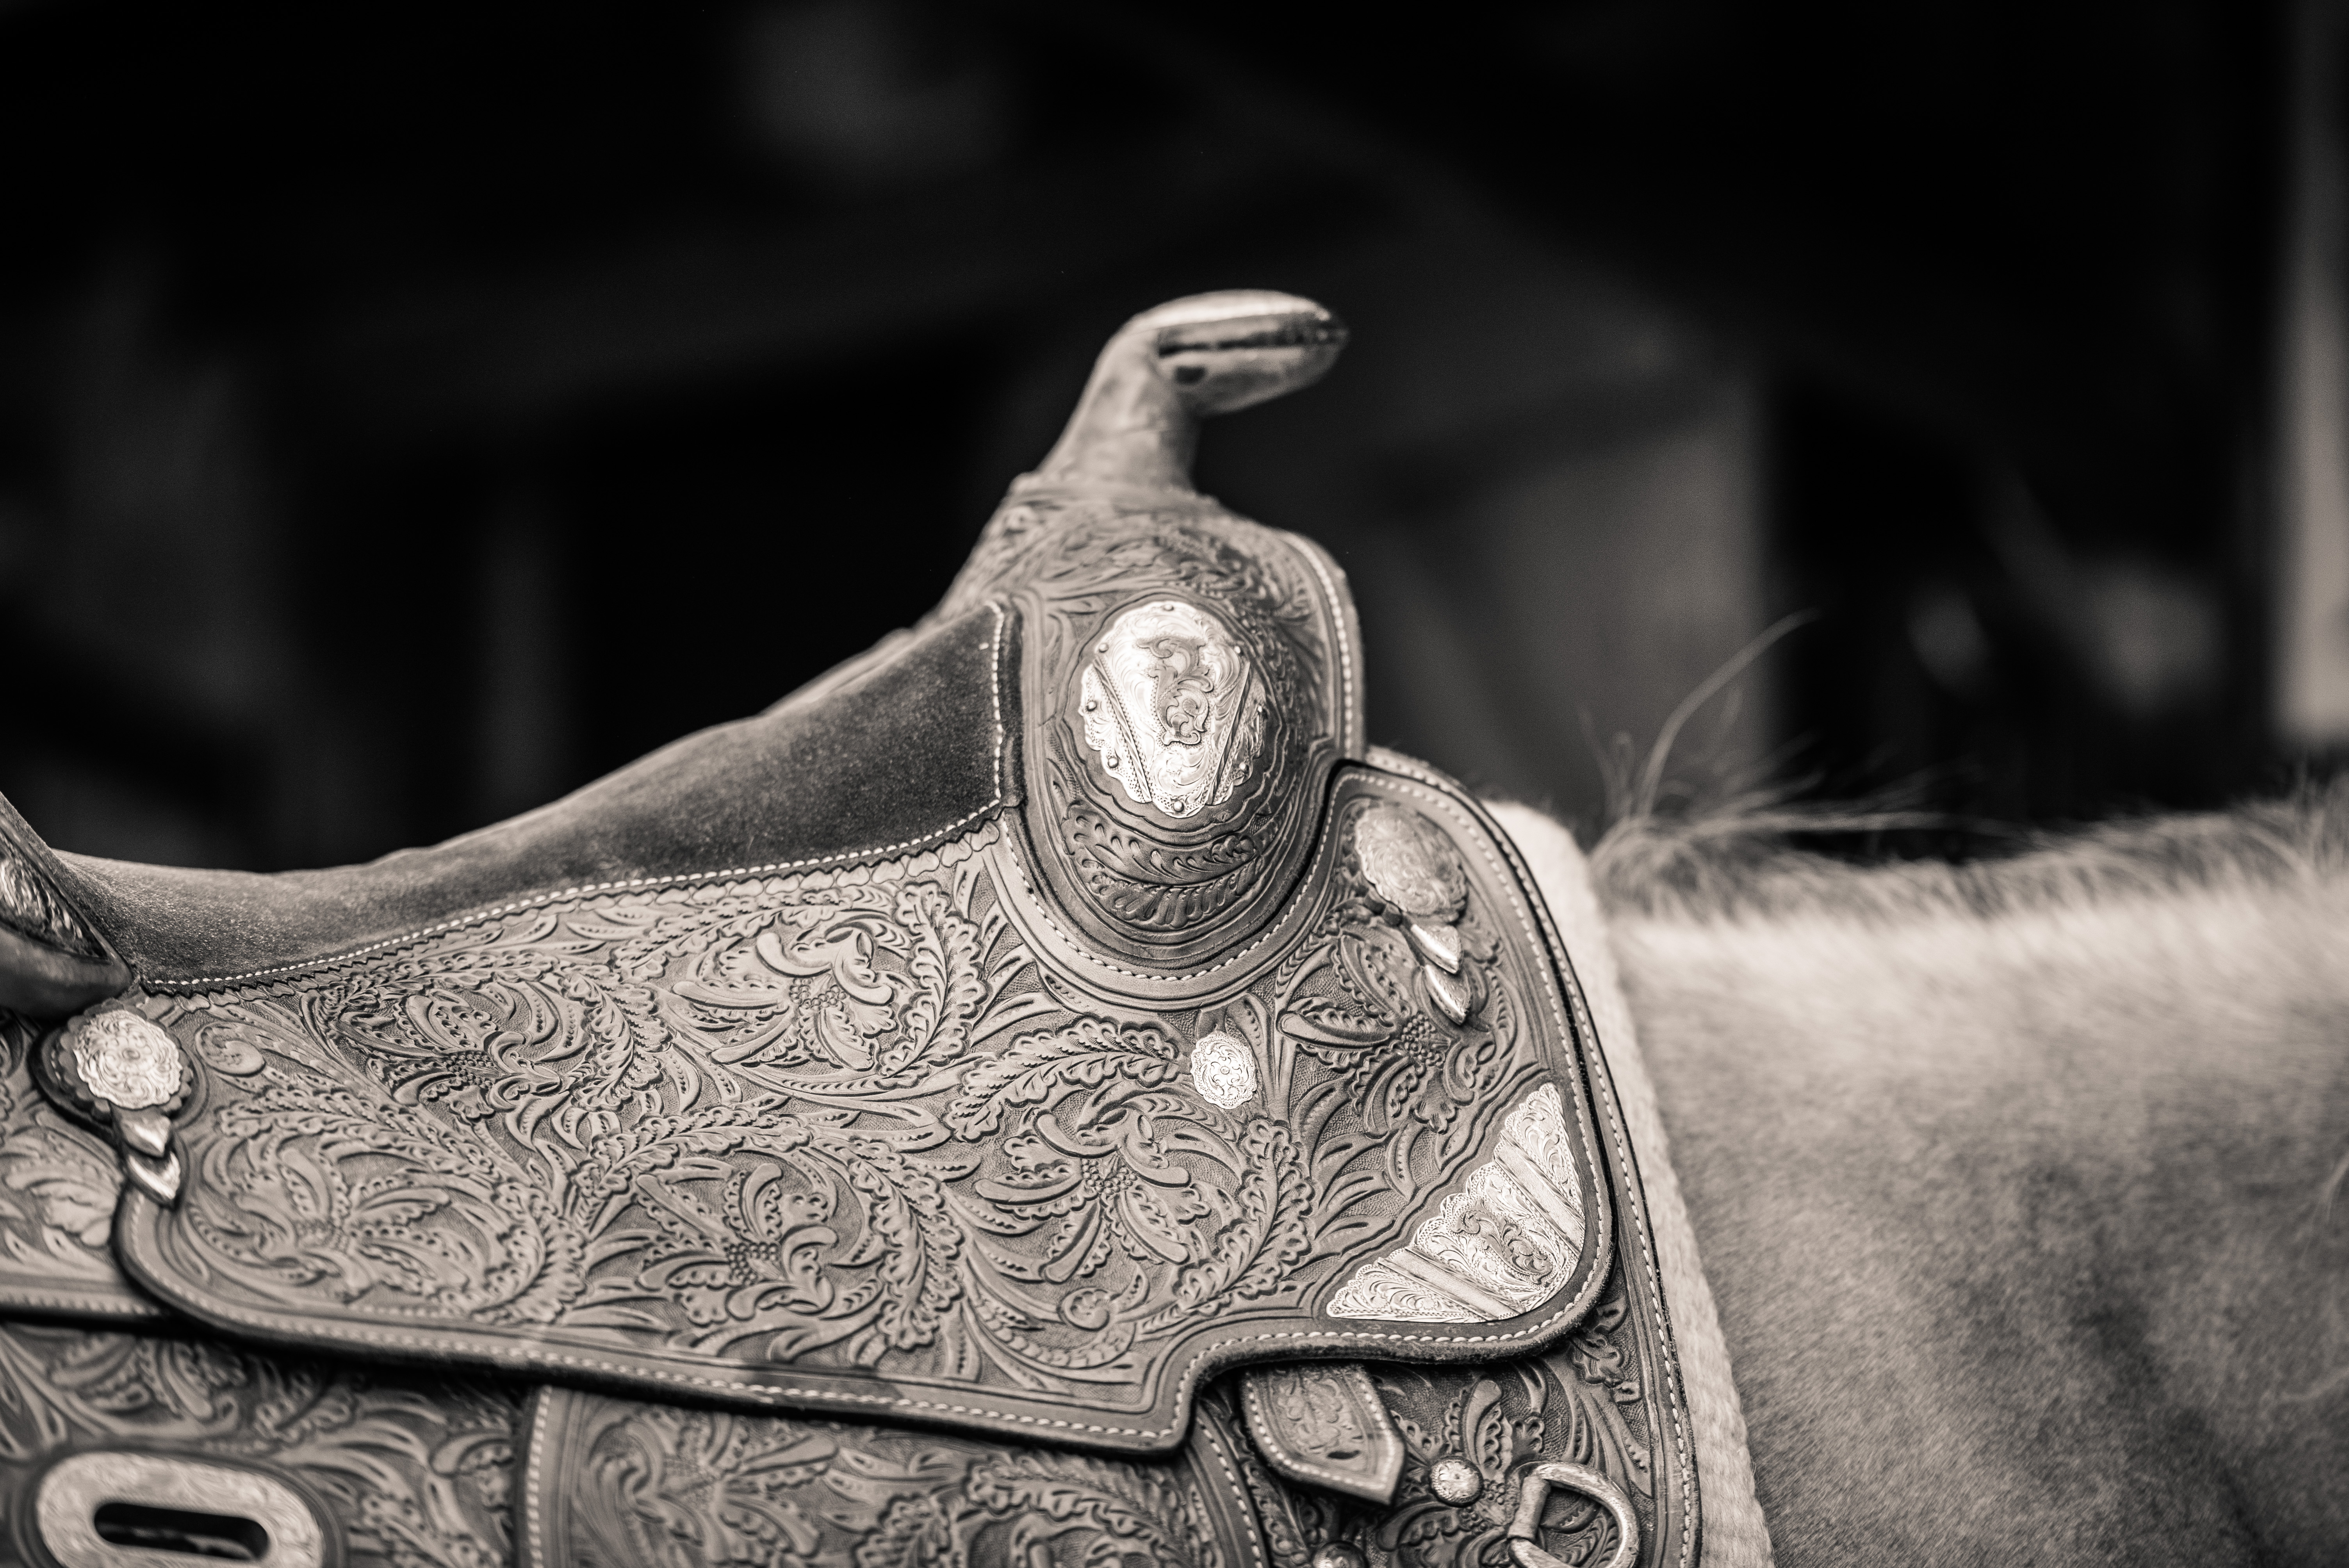 Finding & Attracting Your Ideal Client I via sophiecallahanblog.com I #equinephotography #photography #equineblogger